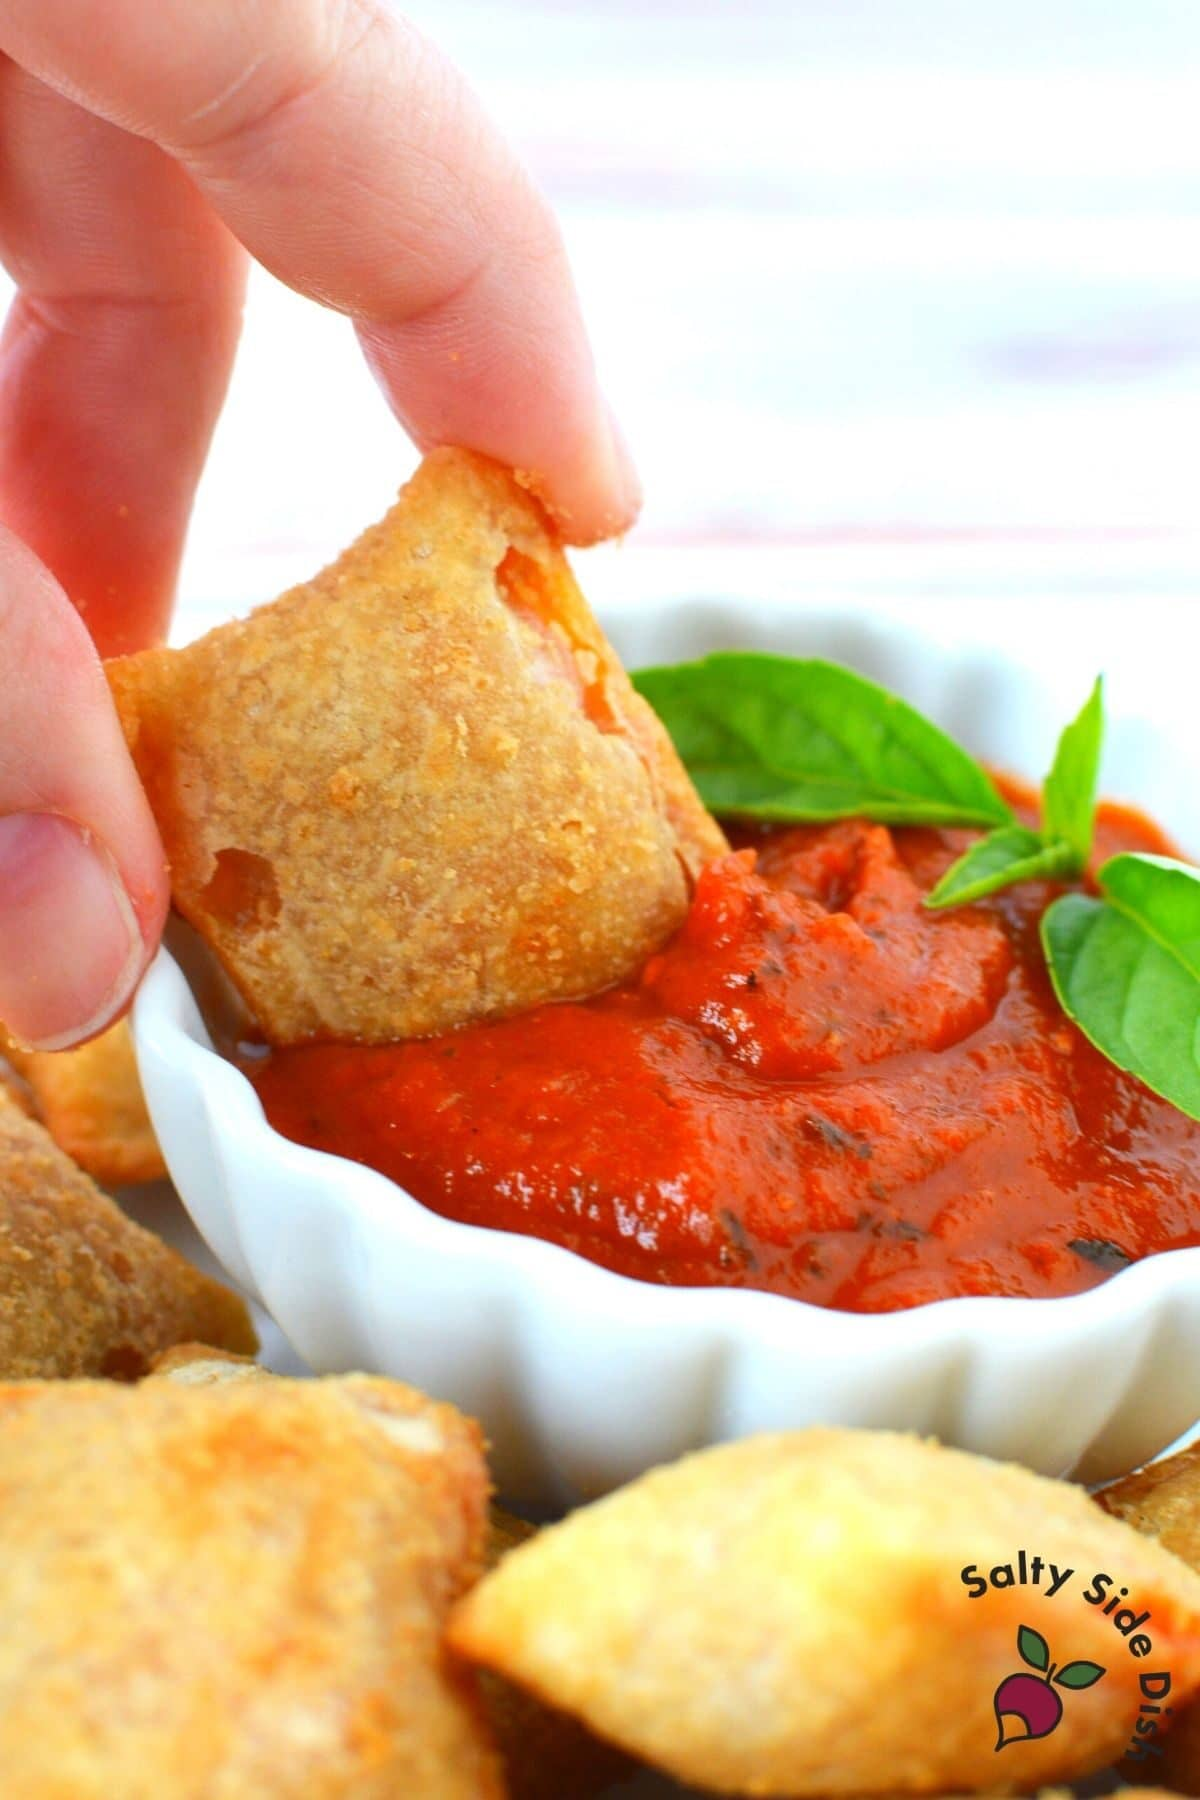 pizza roll in a dipping sauce